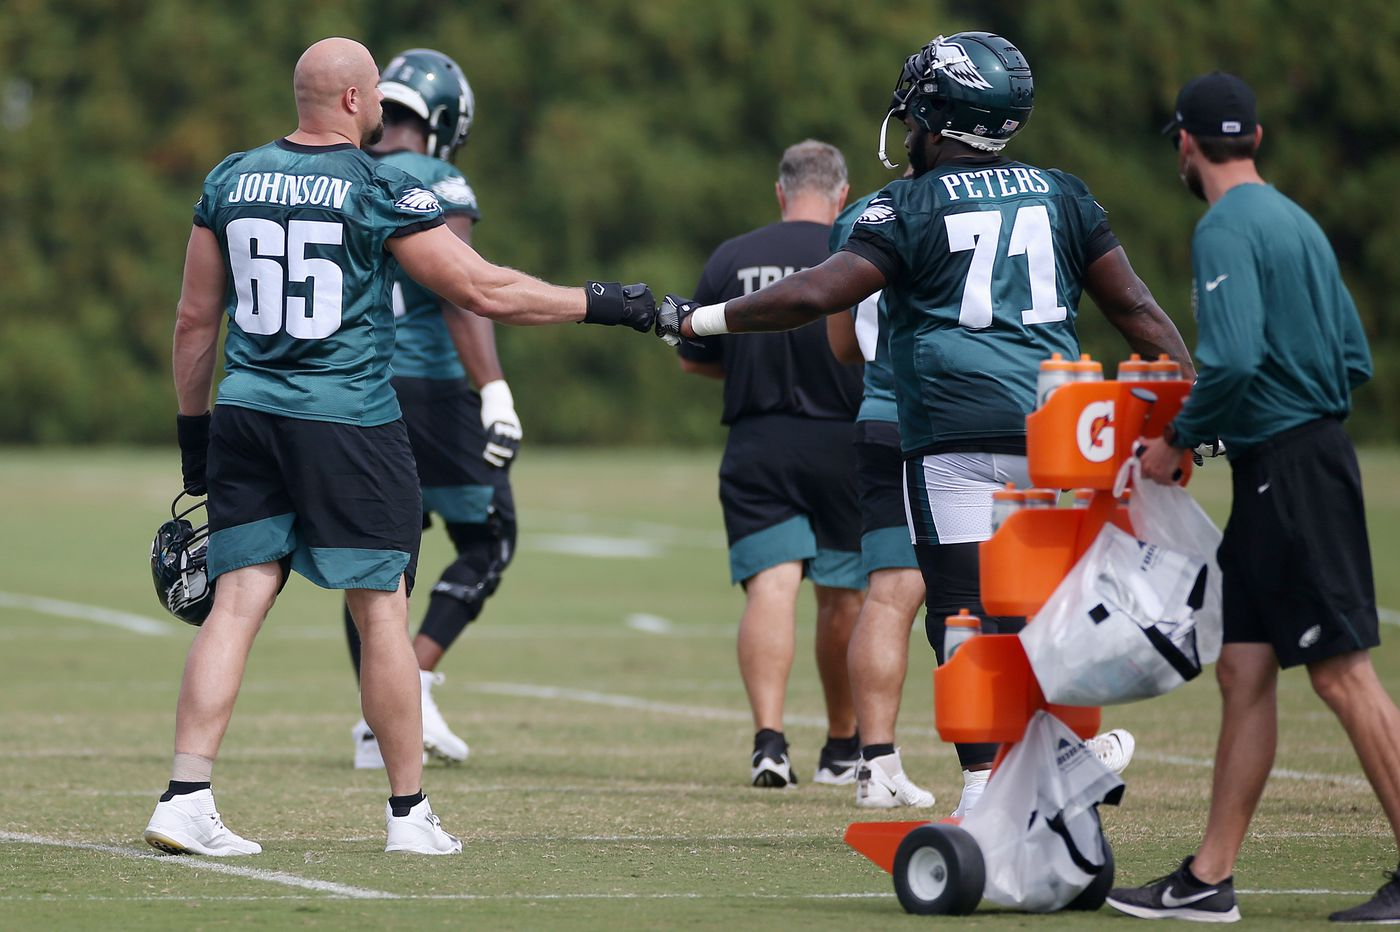 Jason Peters could return to Eagles lineup as Doug Pederson says several injured players will practice